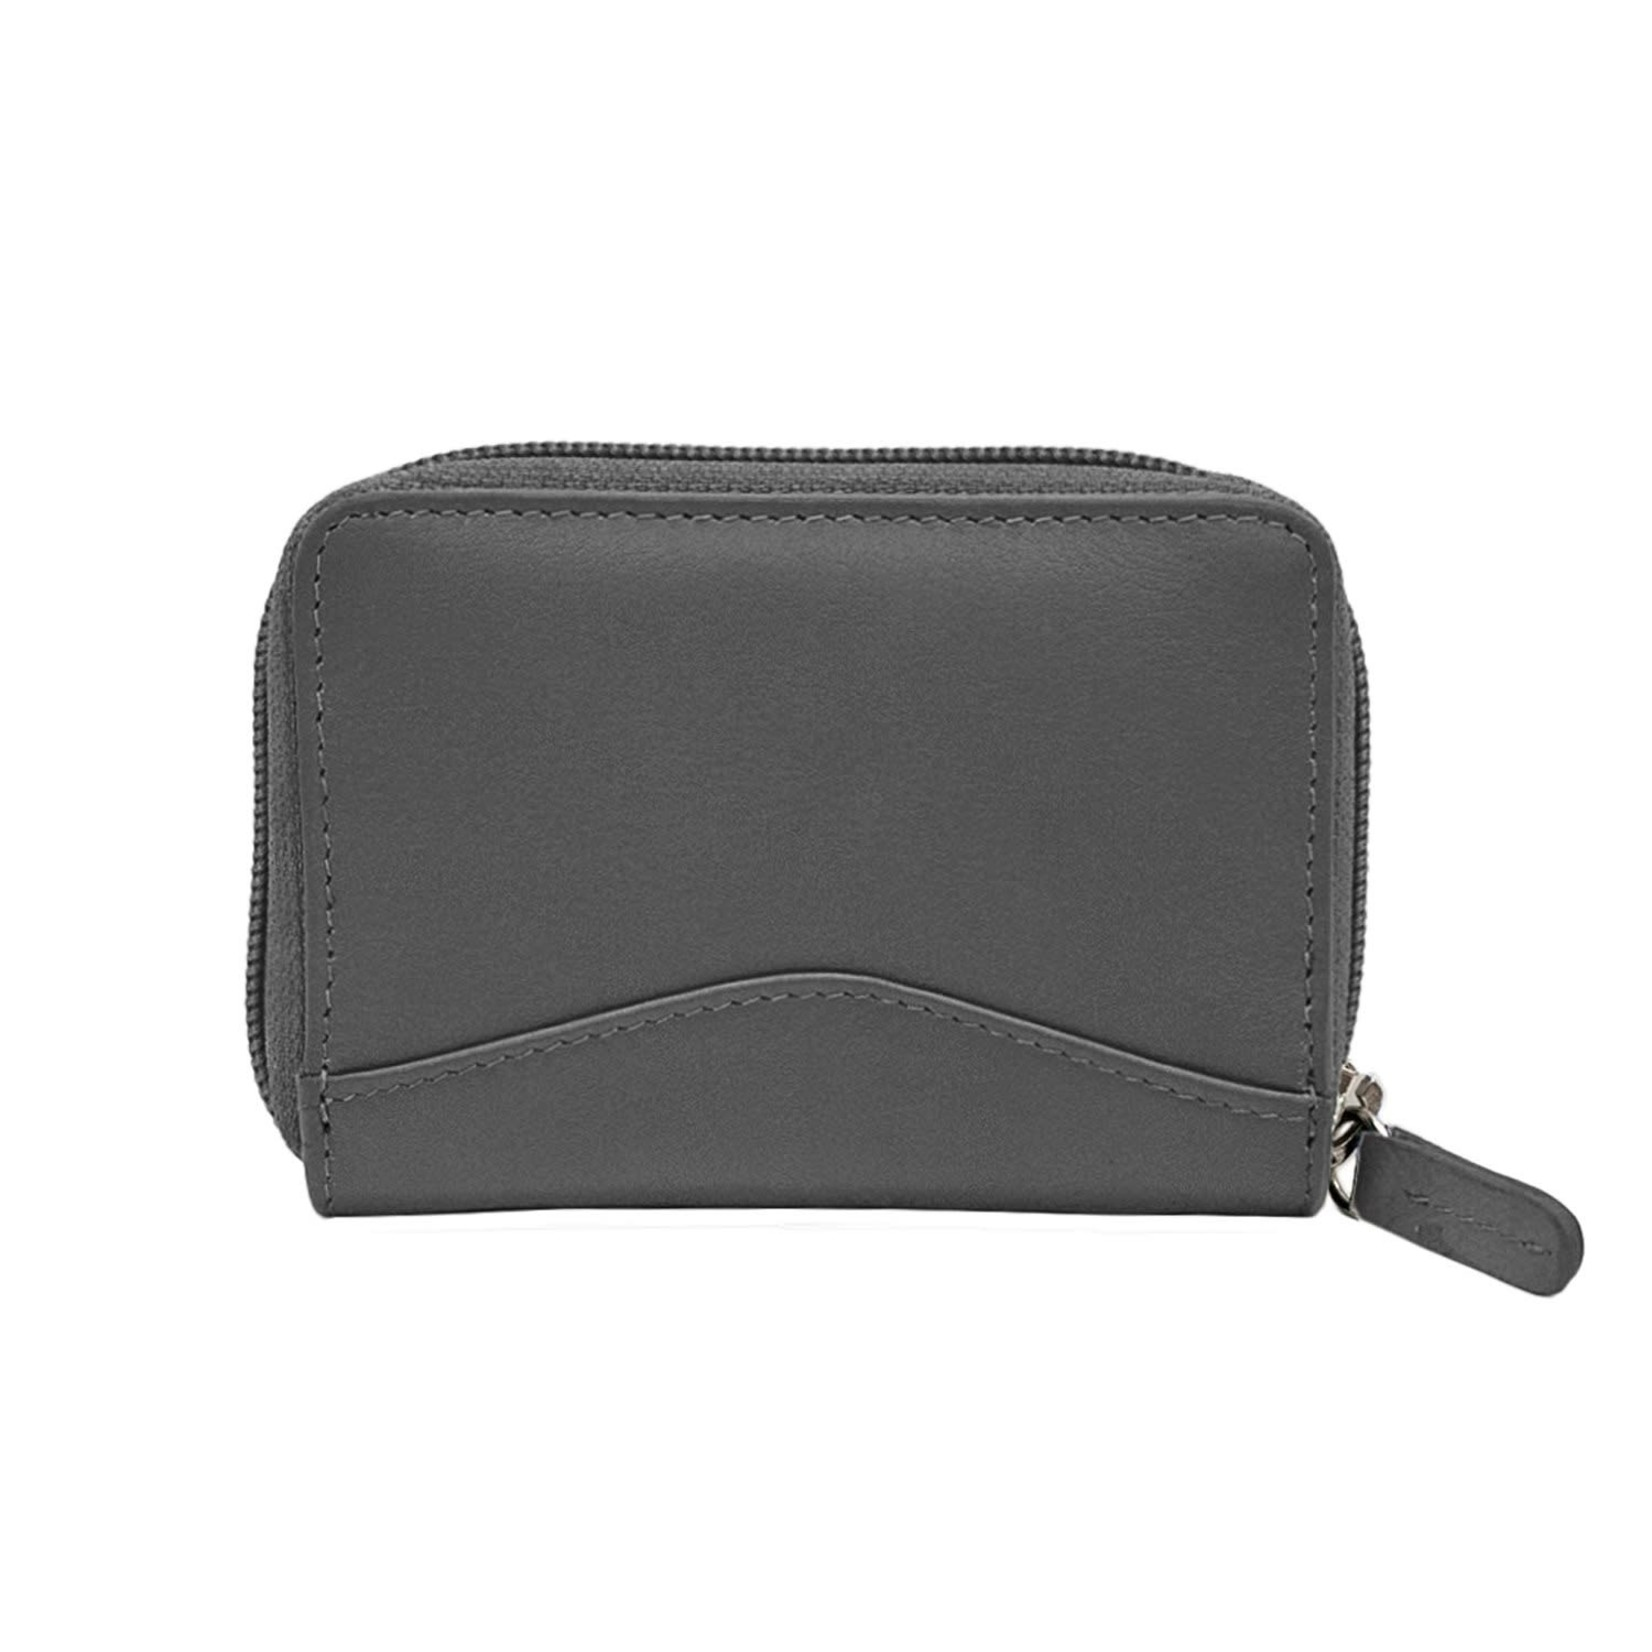 Leather Handbags and Accessories 6711 Gray - Accordion Card Holder